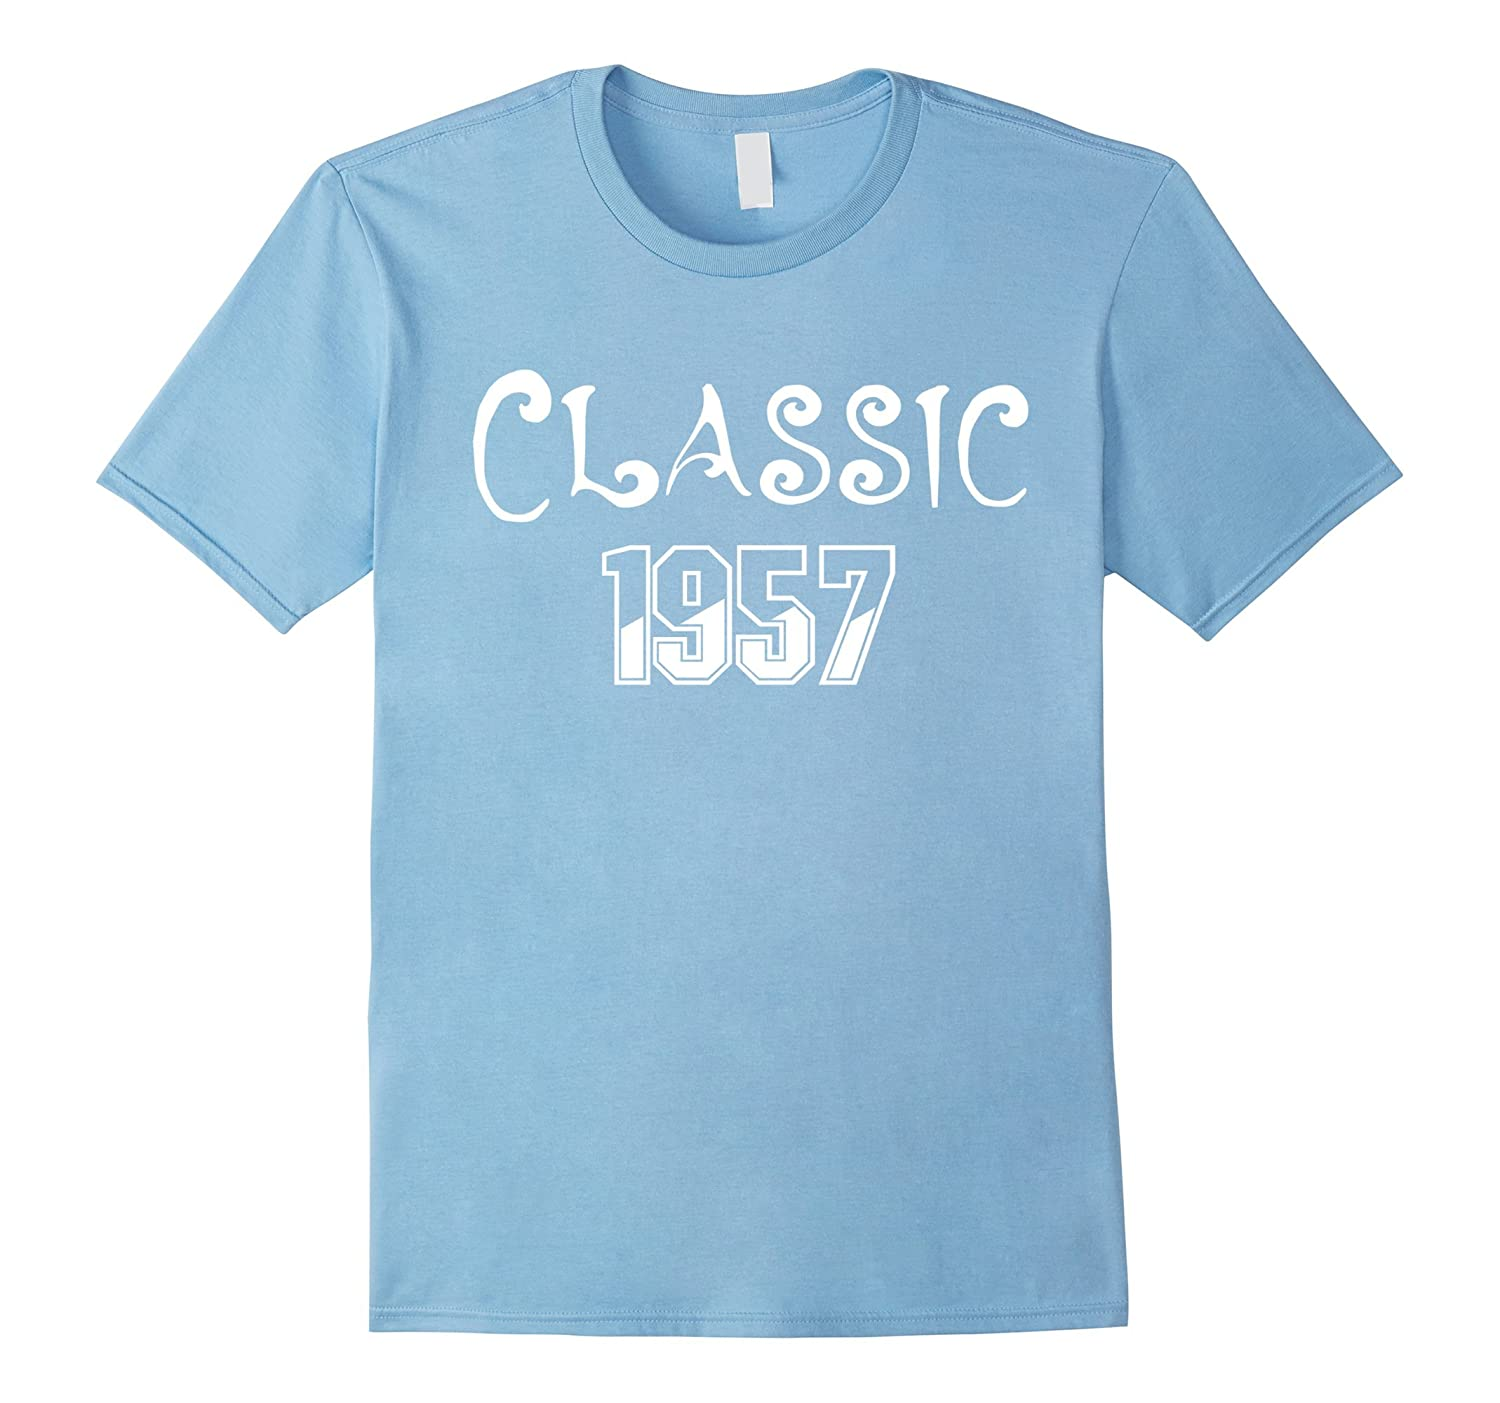 Classic 1957 T Shirt 60th Birthday Gifts For Him CD